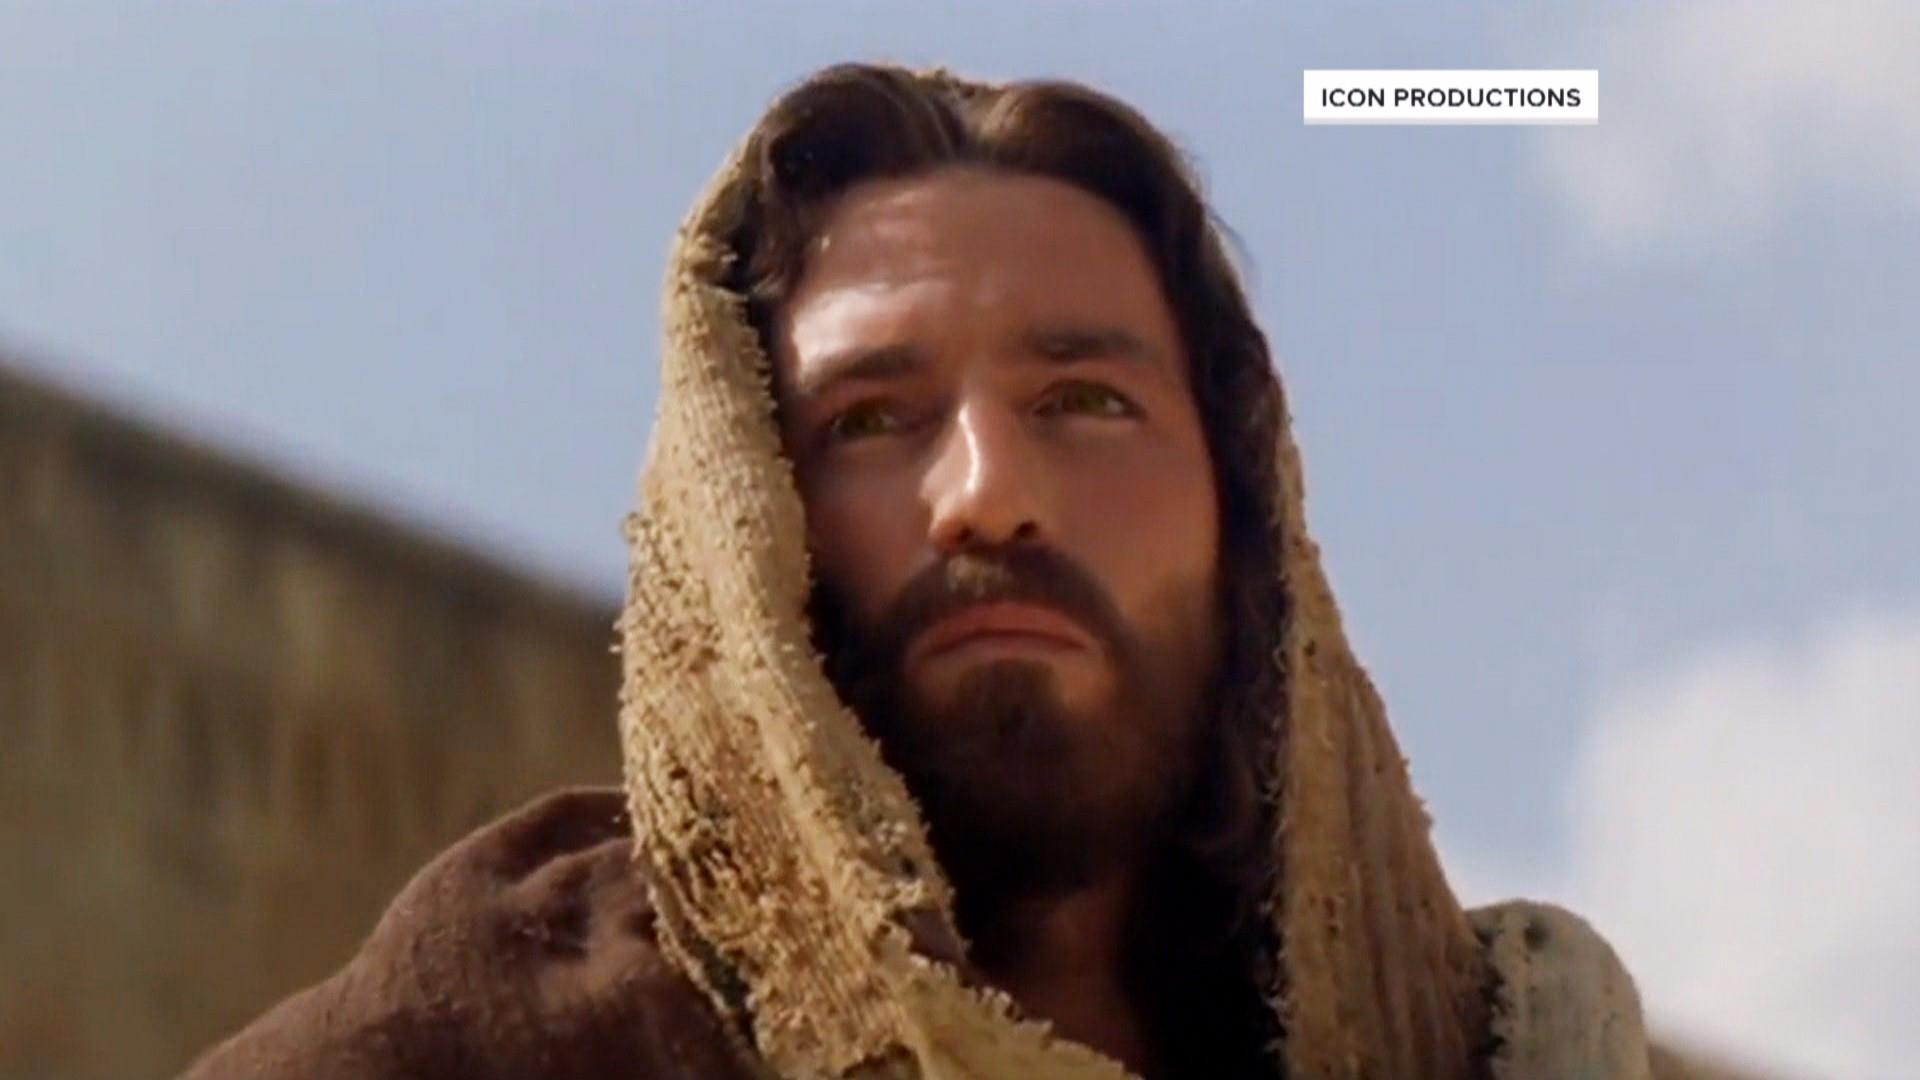 Mel Gibson Set To Make Passion Of The Christ Sequel